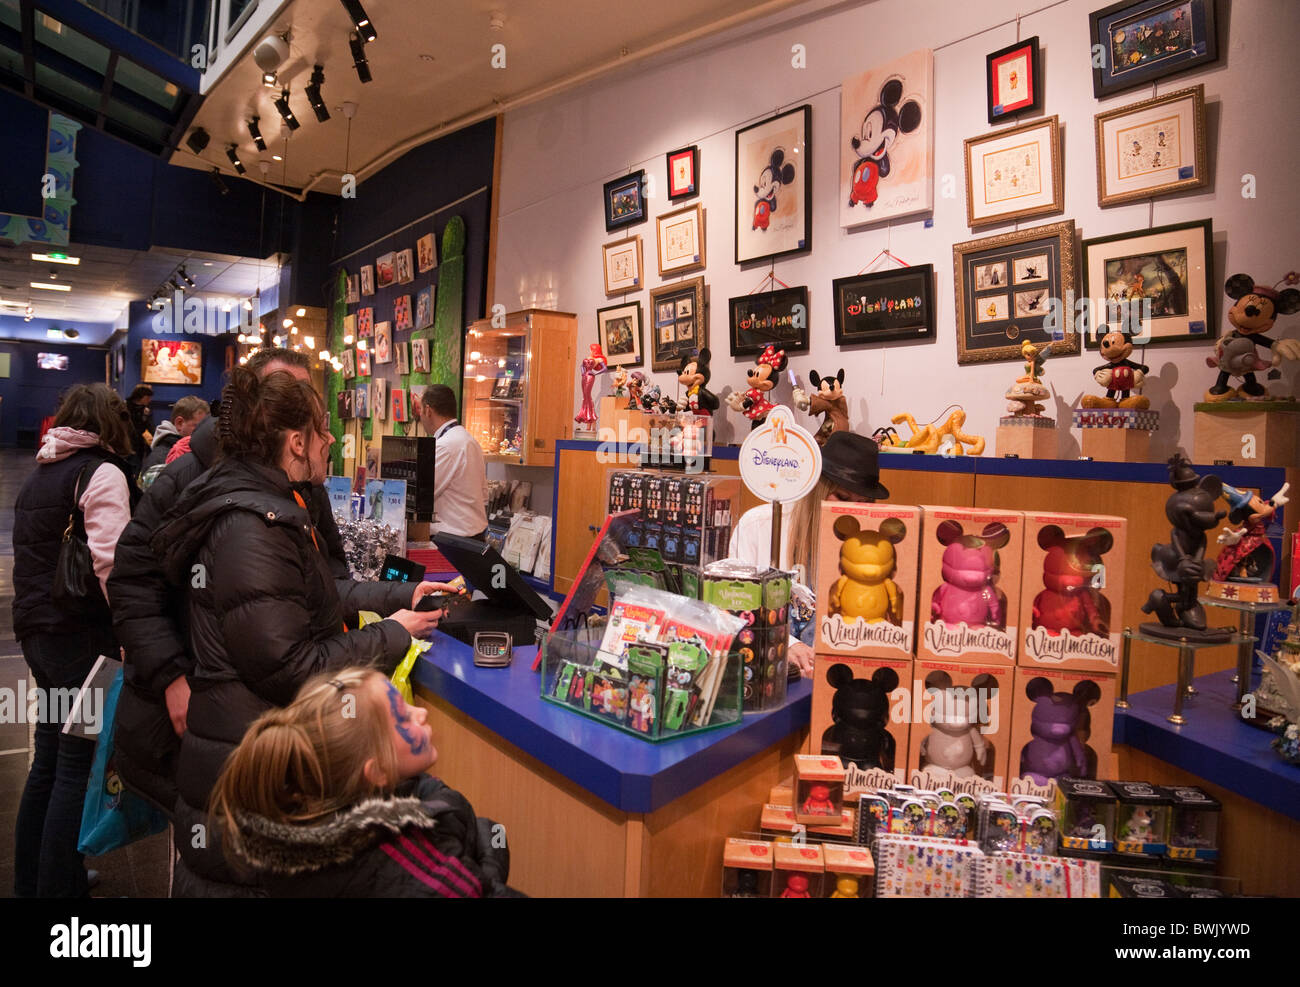 People Shopping In The Disney Store The Village Disneyland Paris Stock Photo 32993785 Alamy